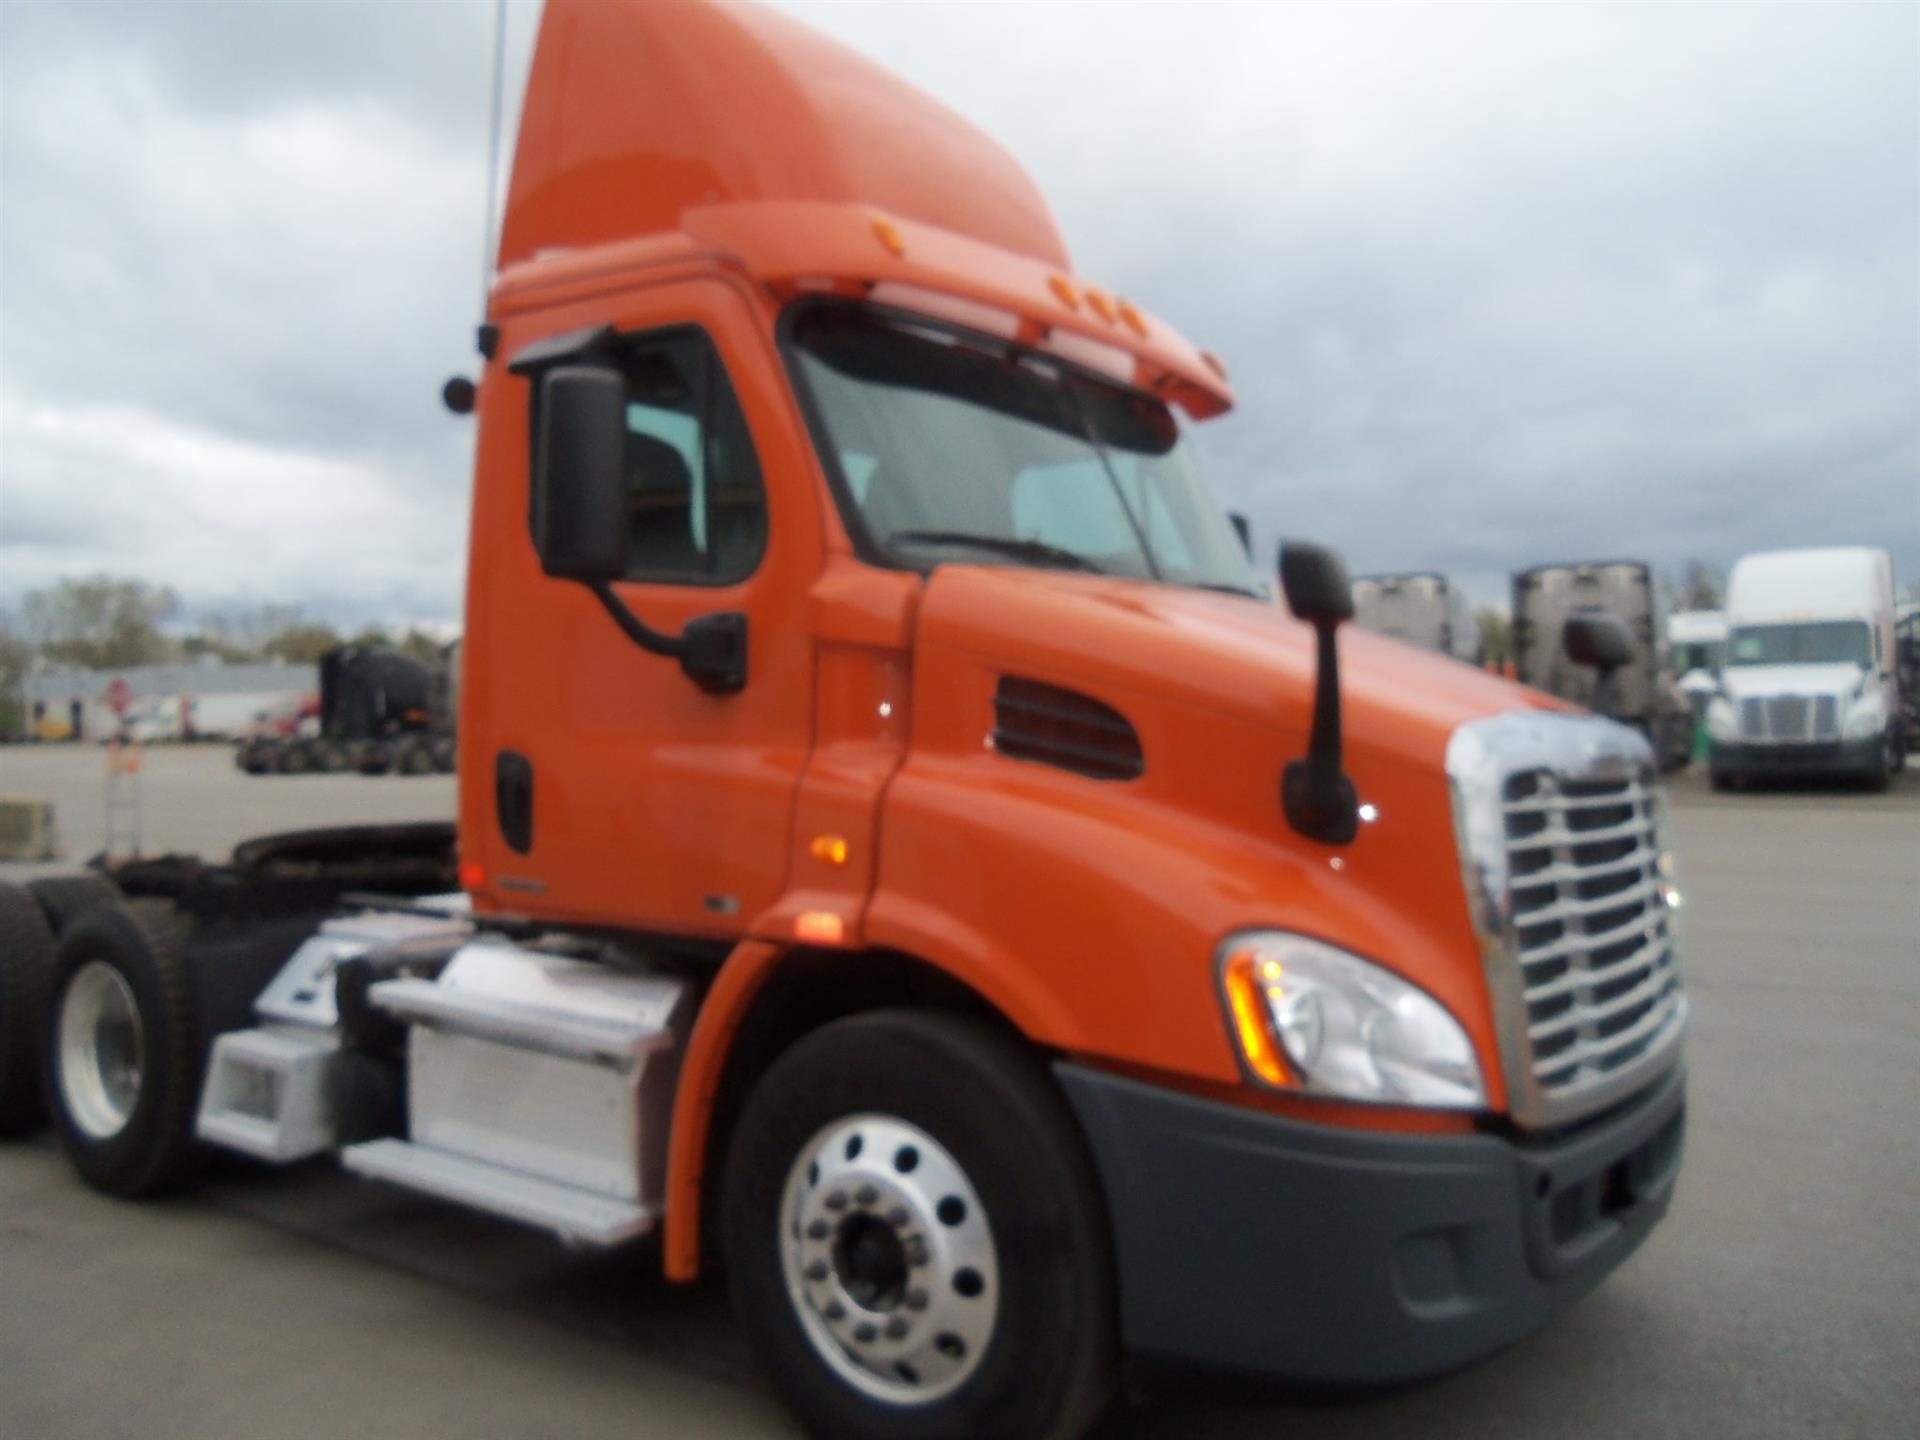 USED 2012 FREIGHTLINER CASCADIA DAYCAB TRUCK #133813